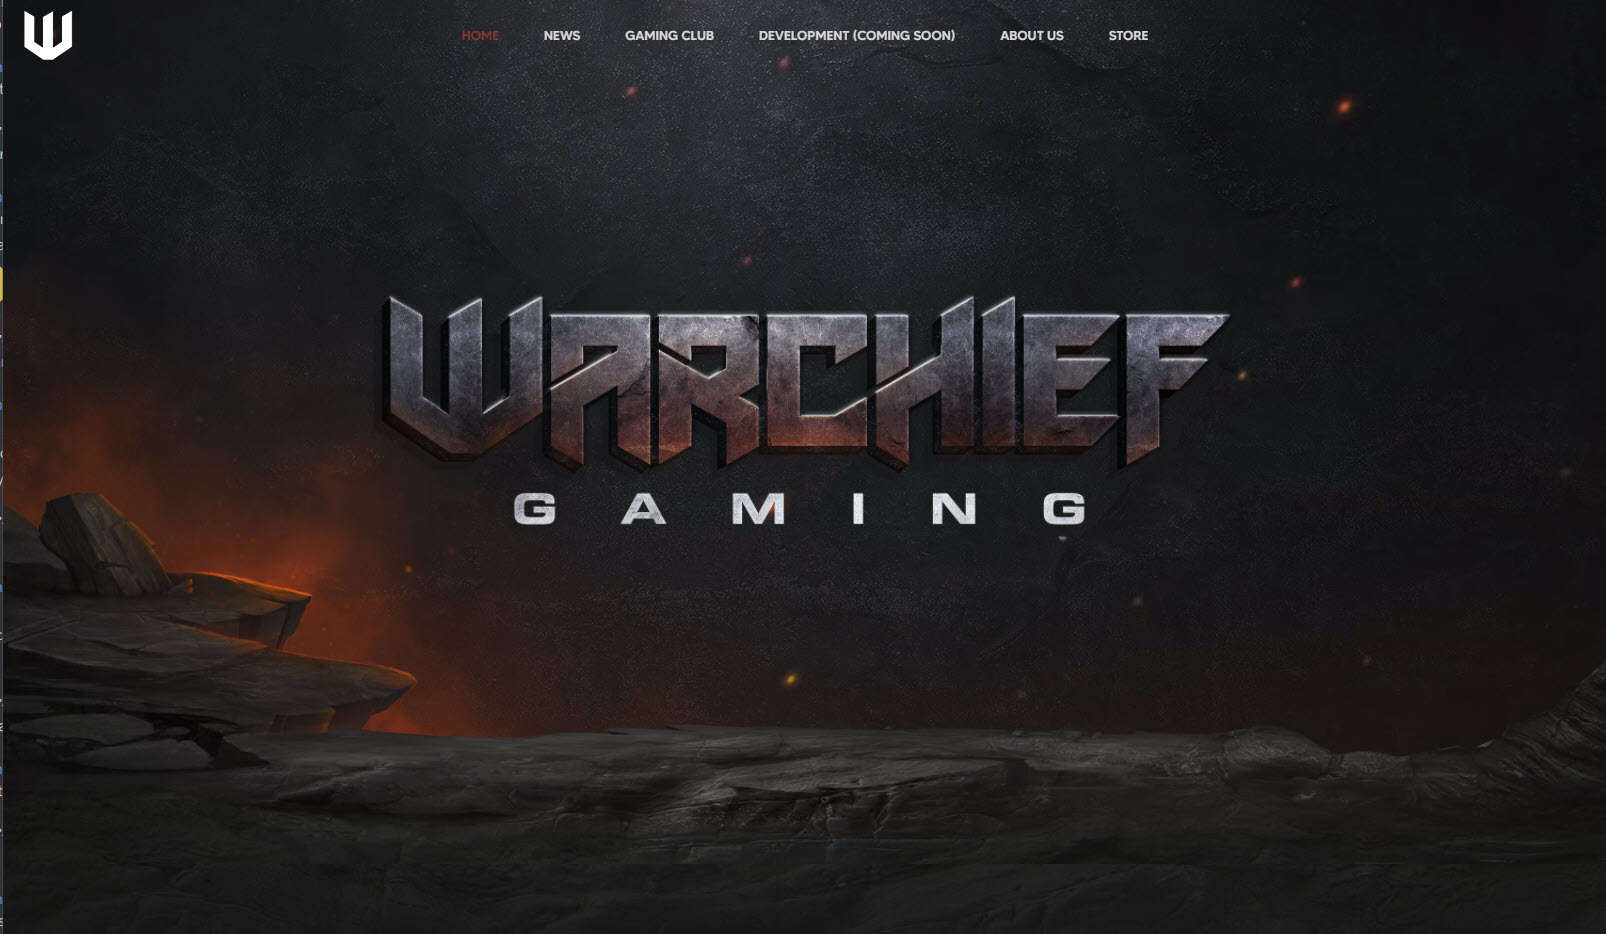 warchiefgaming.com